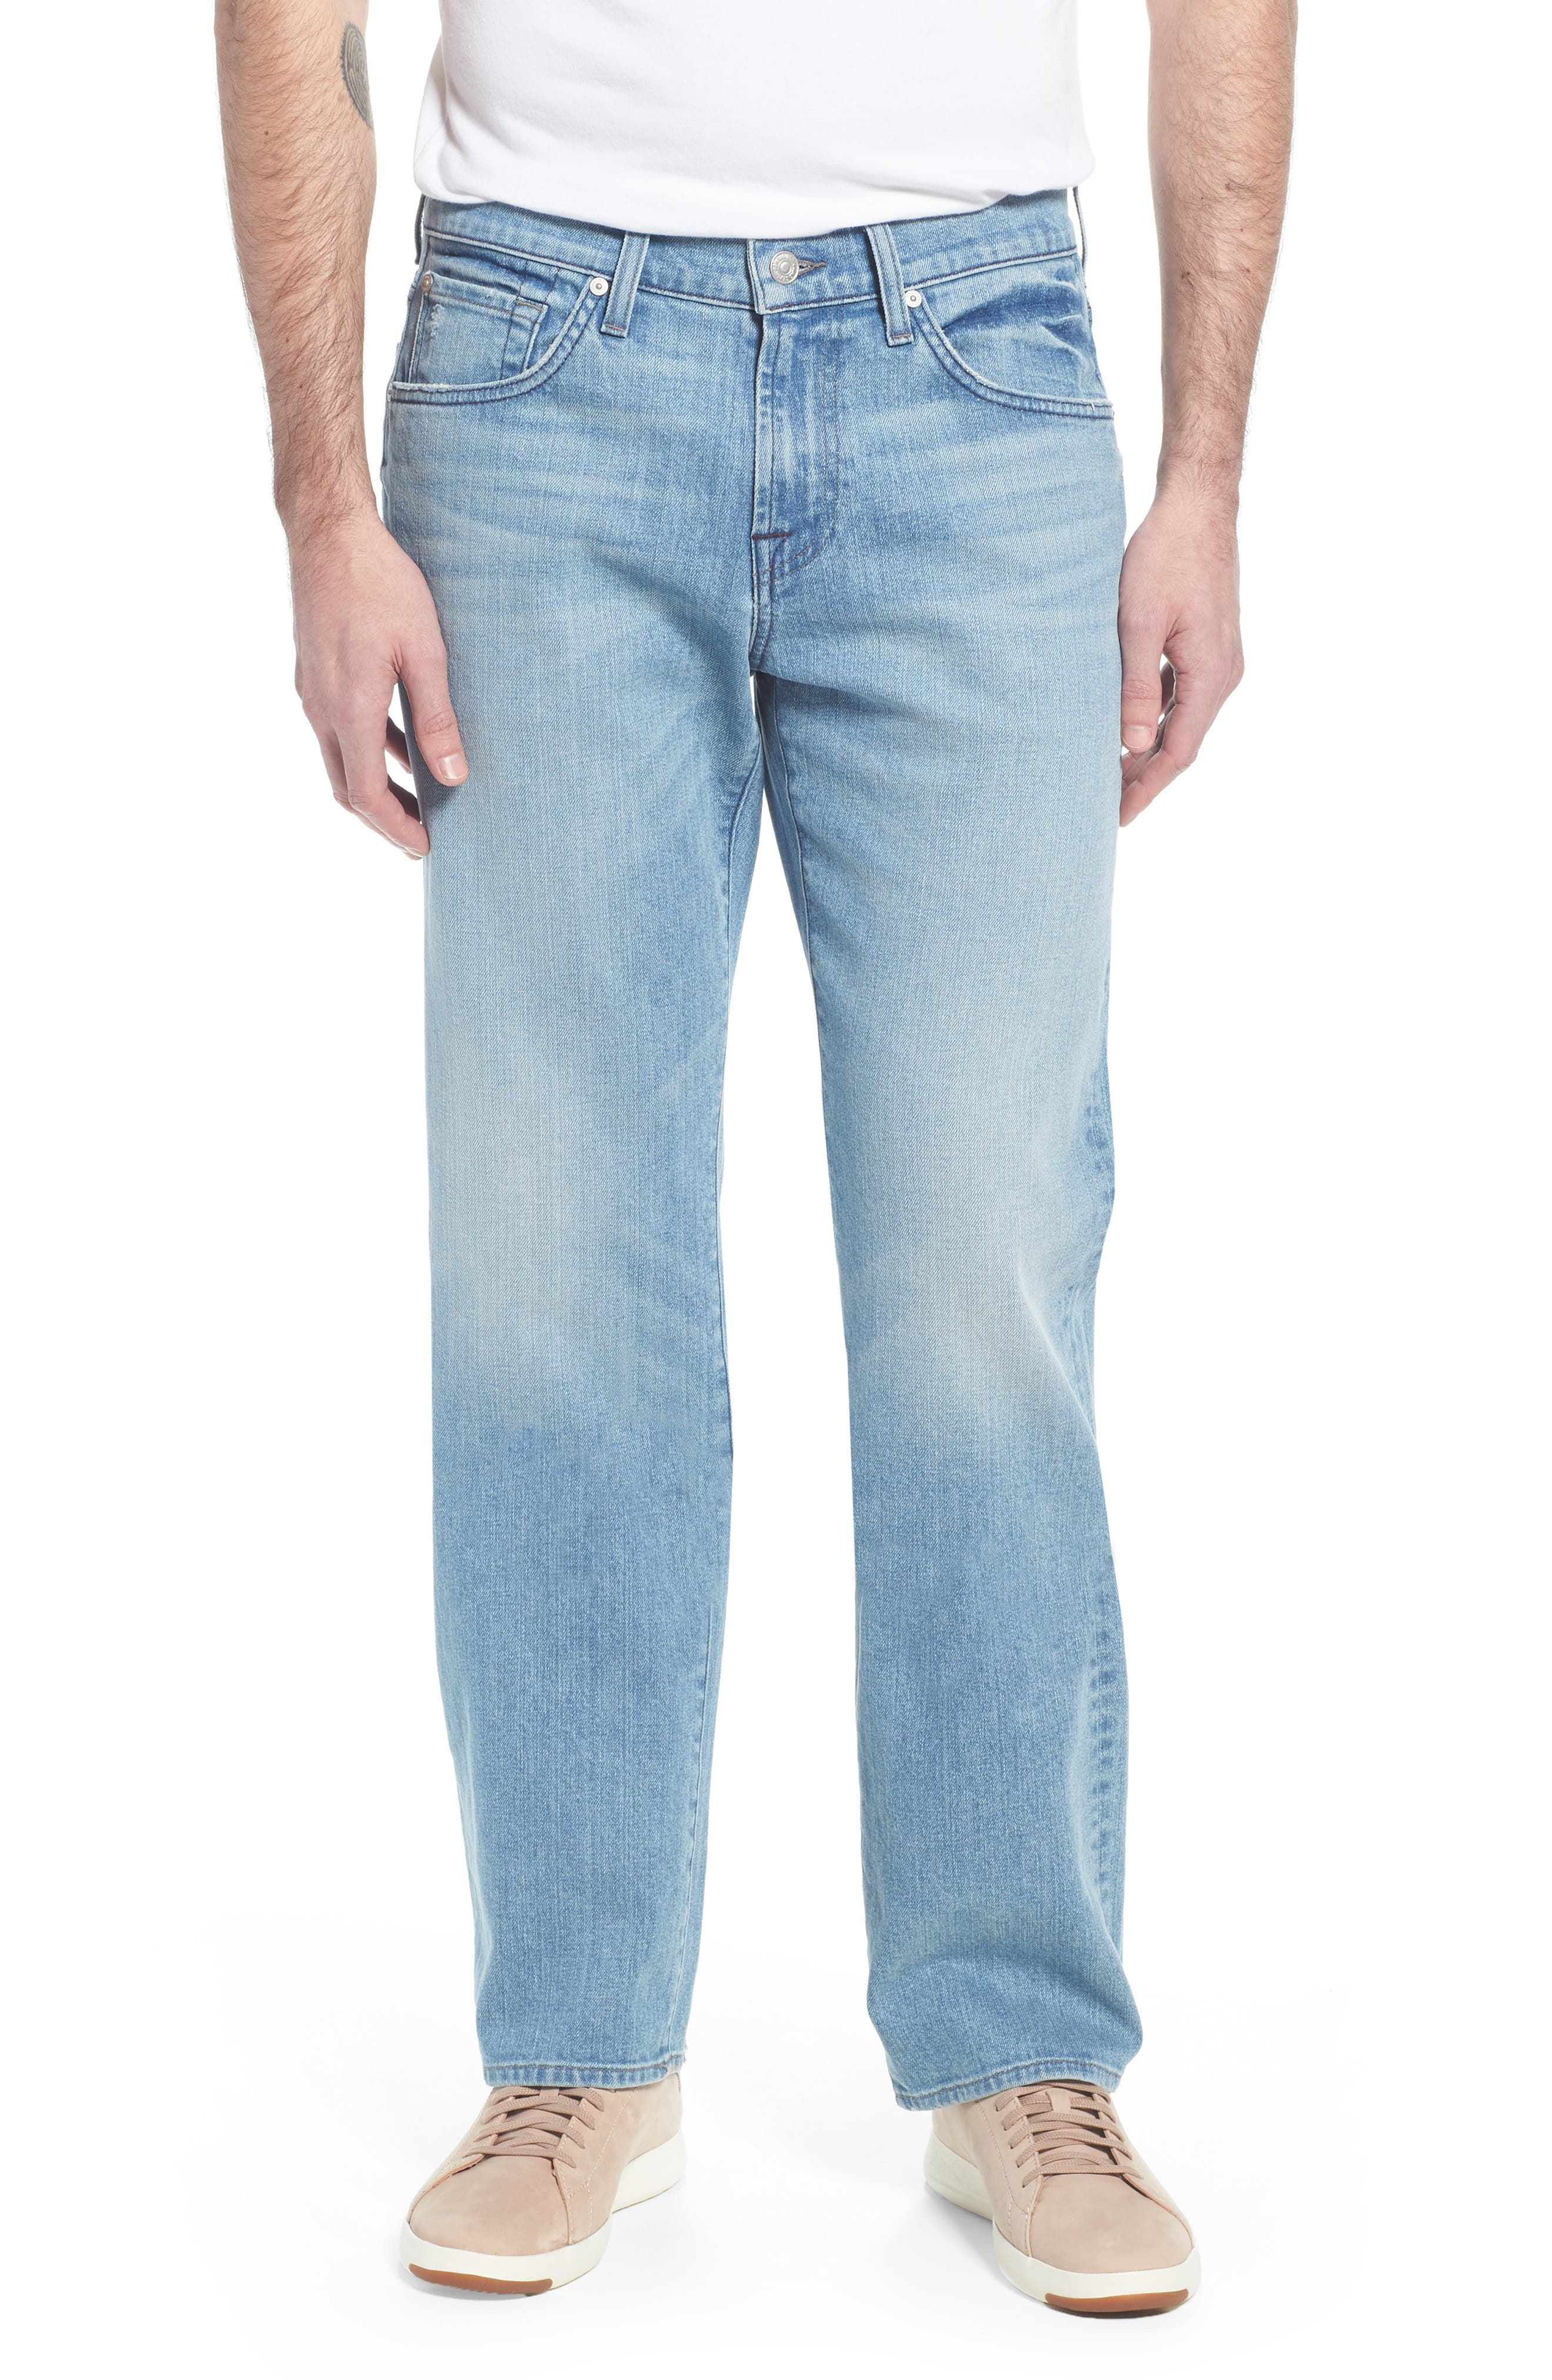 Austyn Relaxed Fit Jeans,                             Main thumbnail 1, color,                             401